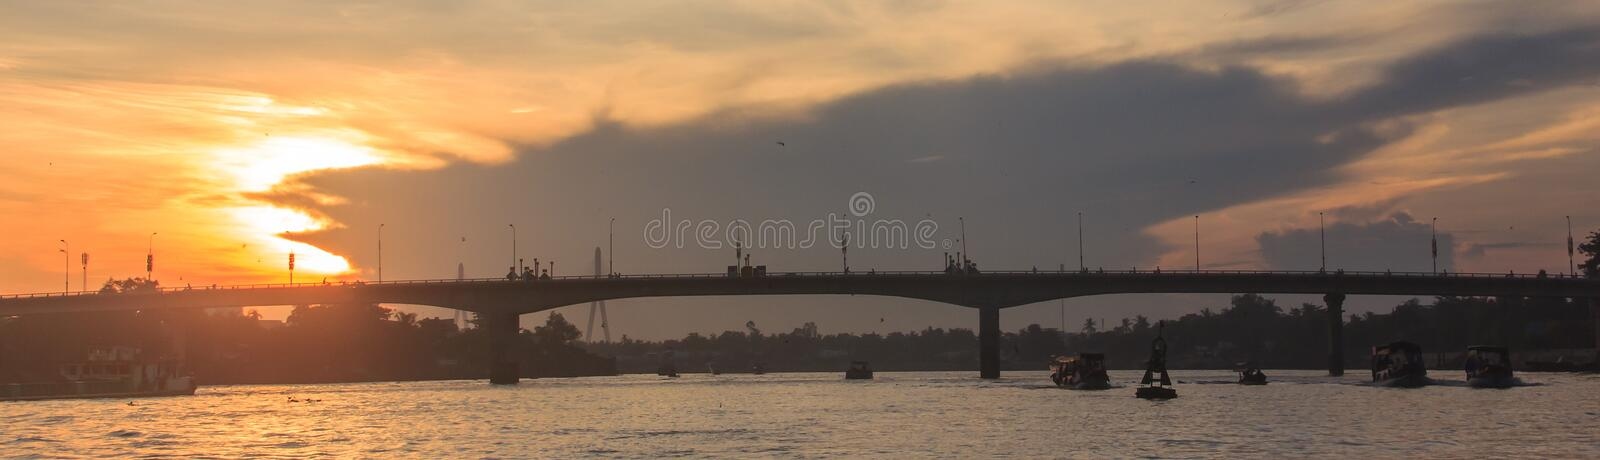 Start the day with Beautiful Summer Sunrise Morning View at Quang Trung bridge near Can Tho Float Market, Hau River, Can Tho, Viet. Nam royalty free stock photo